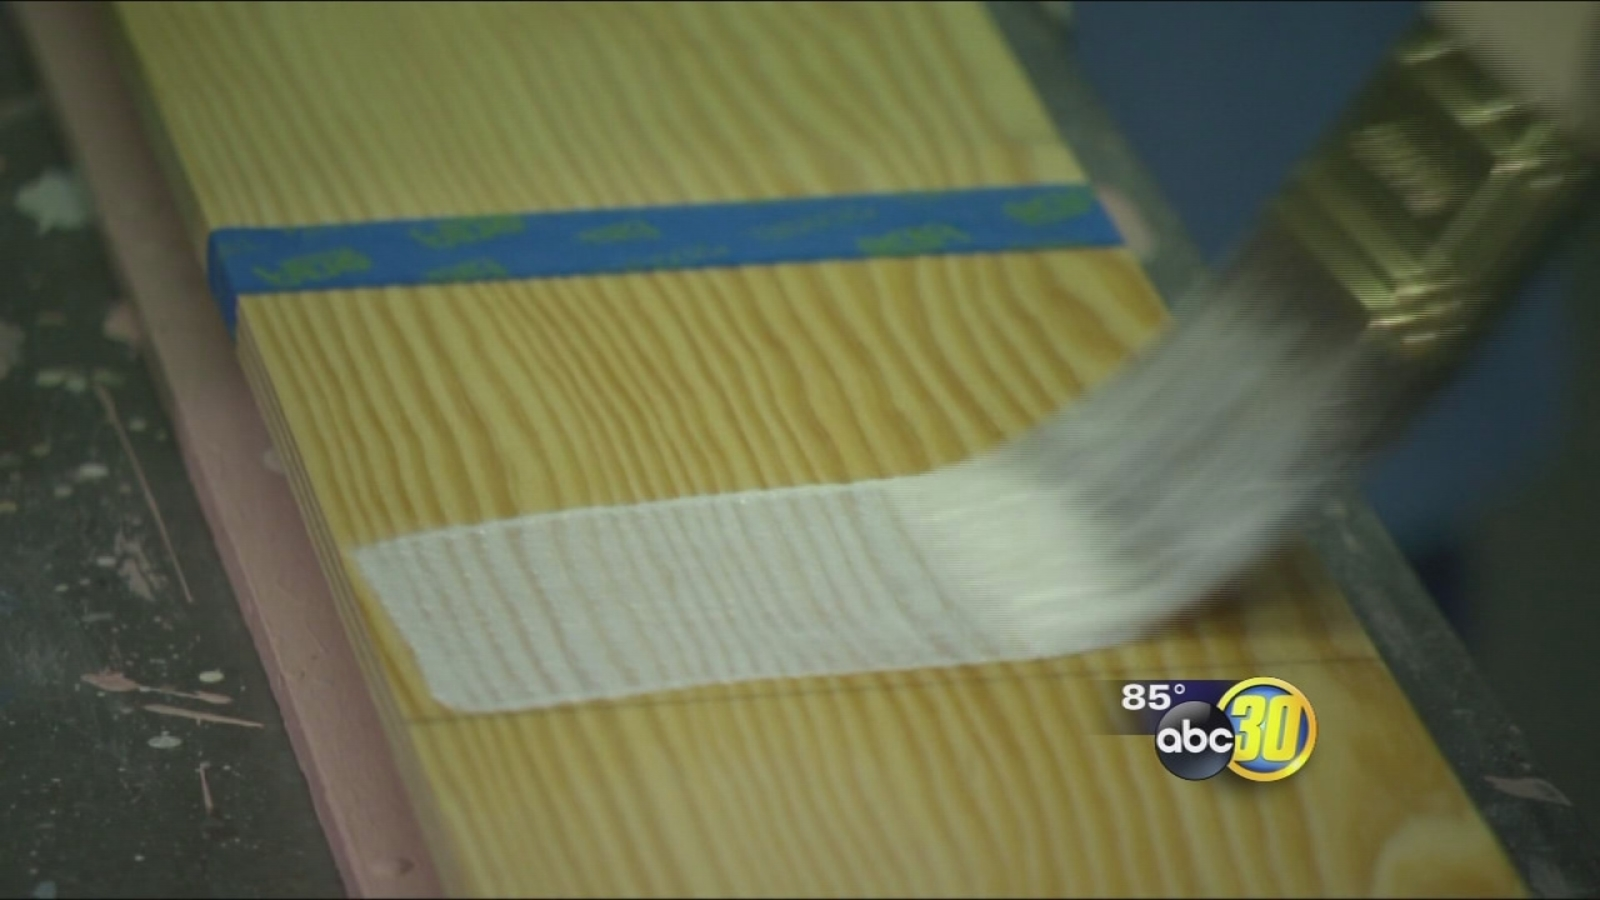 Consumer Reports names top deck stains - ABC30 Fresno